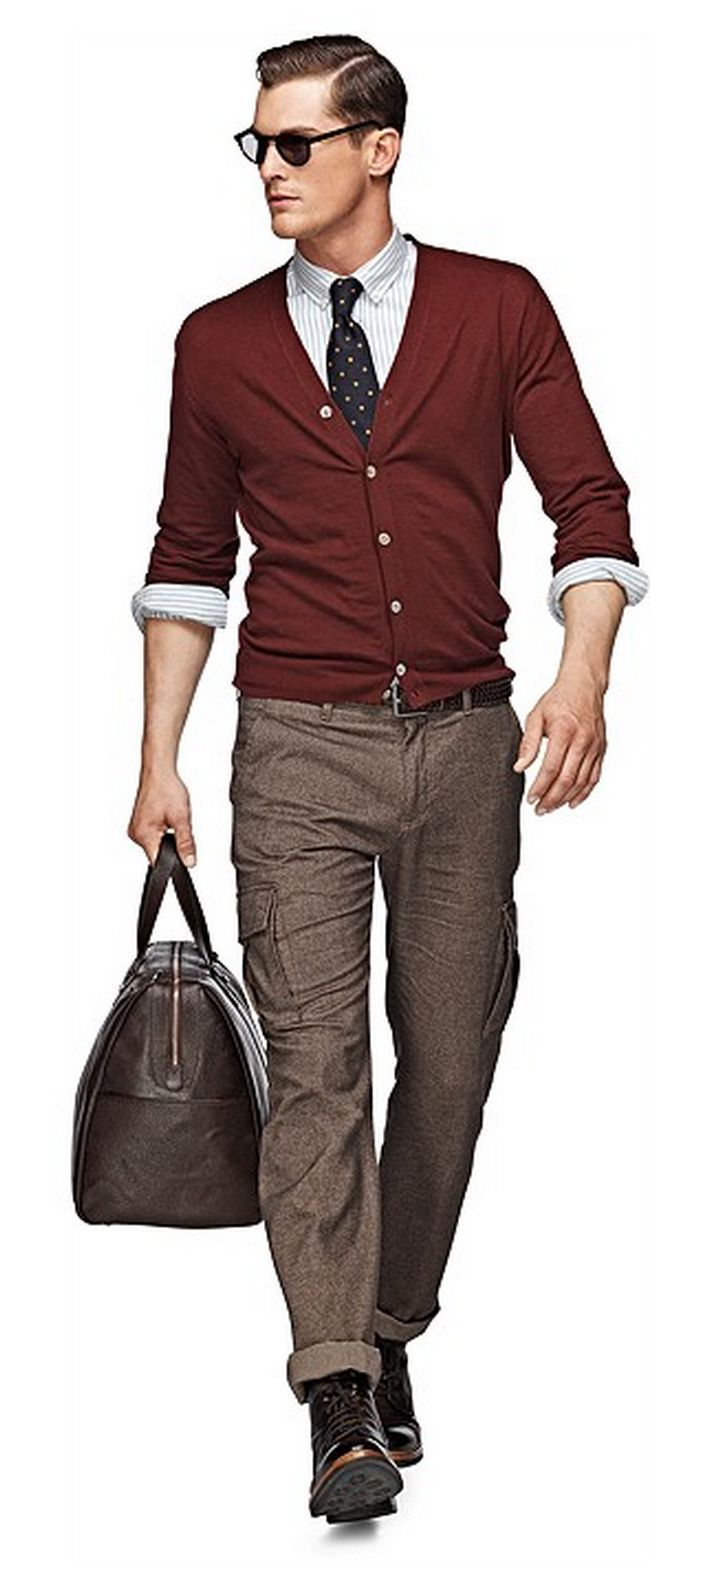 The Gent's Guide to Men's Business Casual | Smart business casual ...